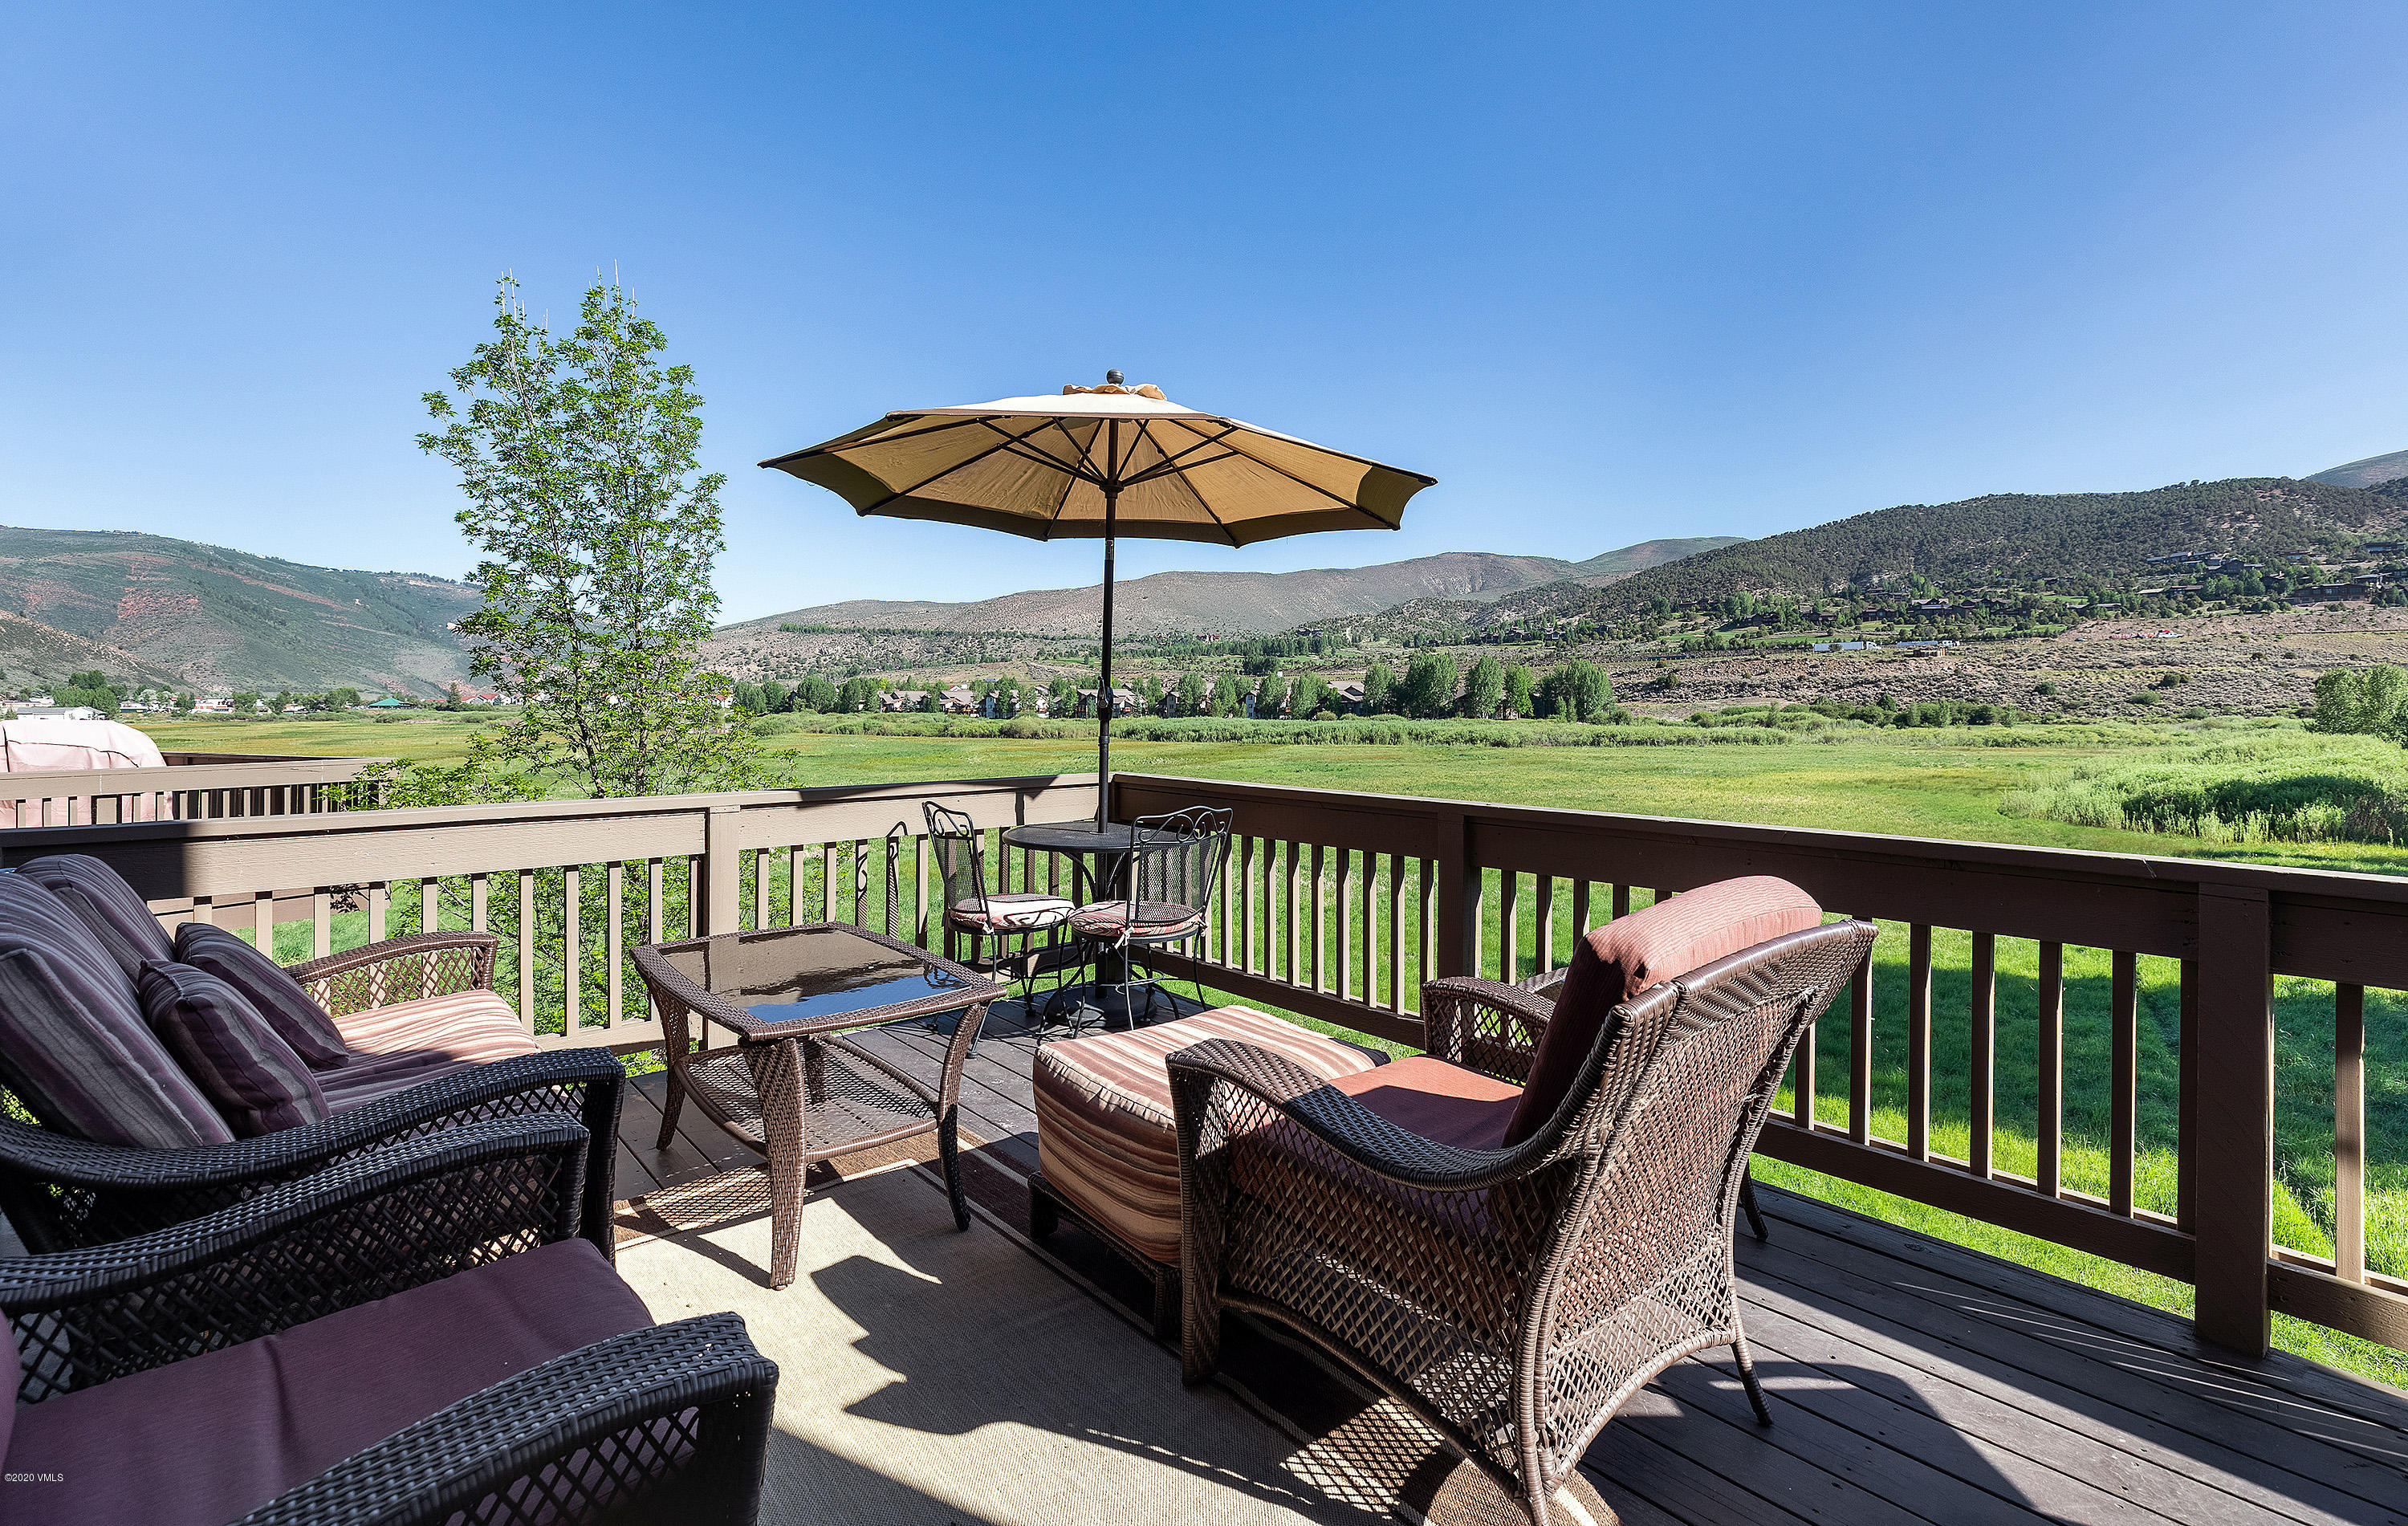 Overlooking a vast open wetland meadow with wildlife and mountain views beyond, this beautiful Edwards home is located on the confluence of Lake Creek and the Eagle River, with private fishing rights just outside the back door.  The home is filled with natural light and features elegant finishes, hardwood floors, and plush carpeting.  The main floor open-concept living room leads to the deck for lounging and enjoying stunning sunsets. The adjoining kitchen and dining area boast alder cabinetry and granite countertops. A nearby ''ski closet'' provides cubbies for boots and helmets or other storage needs.  Relax in the spacious lower level recreation room leading to the enlarged patio with a rock garden and grass yard for play or for hammock time.  In the winter step outside for cross country skiing in the backyard meadow.  Five roomy en-suite bedrooms, three on the top floor and two on the lower level, provide personal space for everyone.  This fabulous home is ideally located, a quick walk to restaurants, the movie theater, and shopping in Riverwalk. Inquire about an option for the Arrowhead Alpine Club membership with free parking, spa services, a pool, and social activities.  Cross over the nearby bridge to the east of the home to discover a children's play set and covered picnic tables by the beautiful creek.  This home is a wonderful setting for enjoying life in all the Vail Valley has to offer.